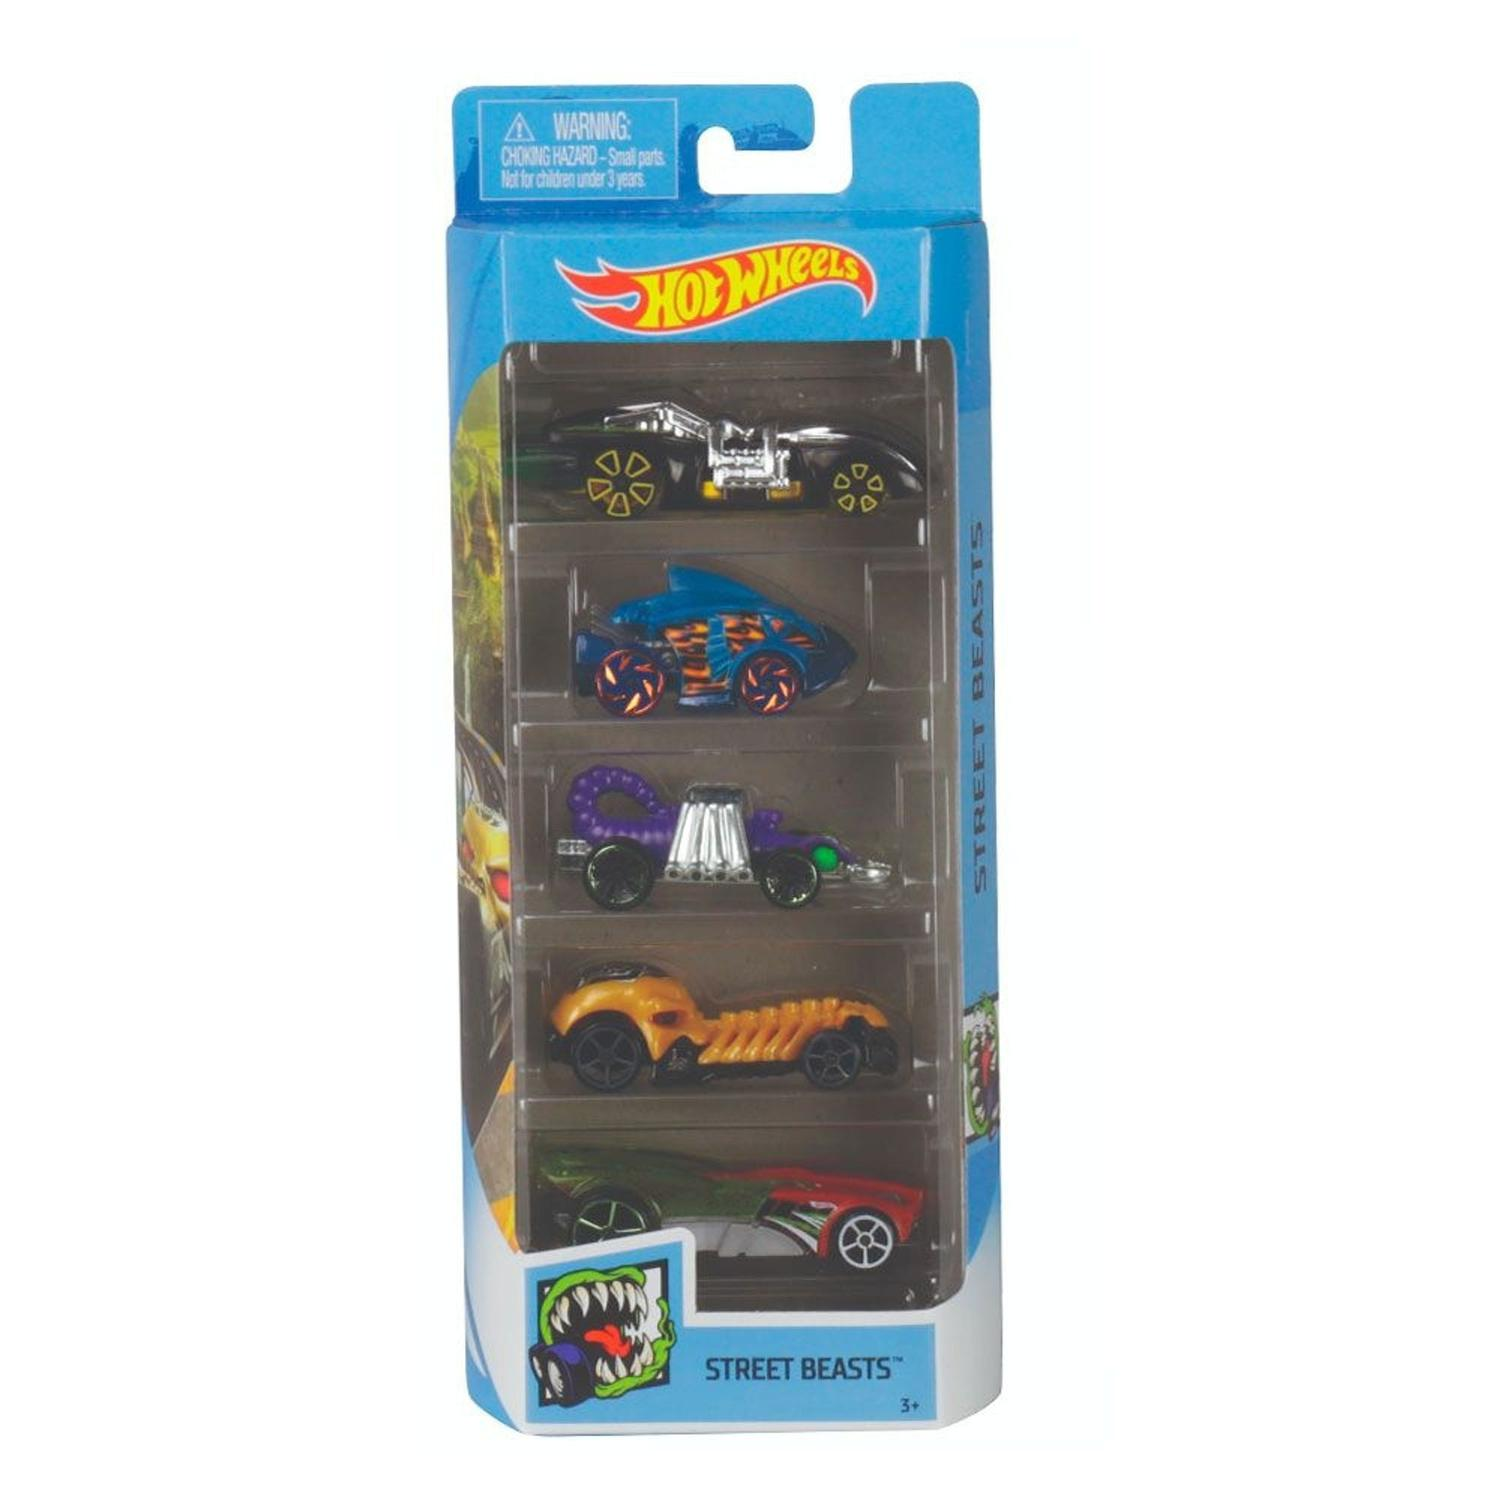 Pack Com 5 Carrinho Hot Wheels: Street Beasts - Mattel